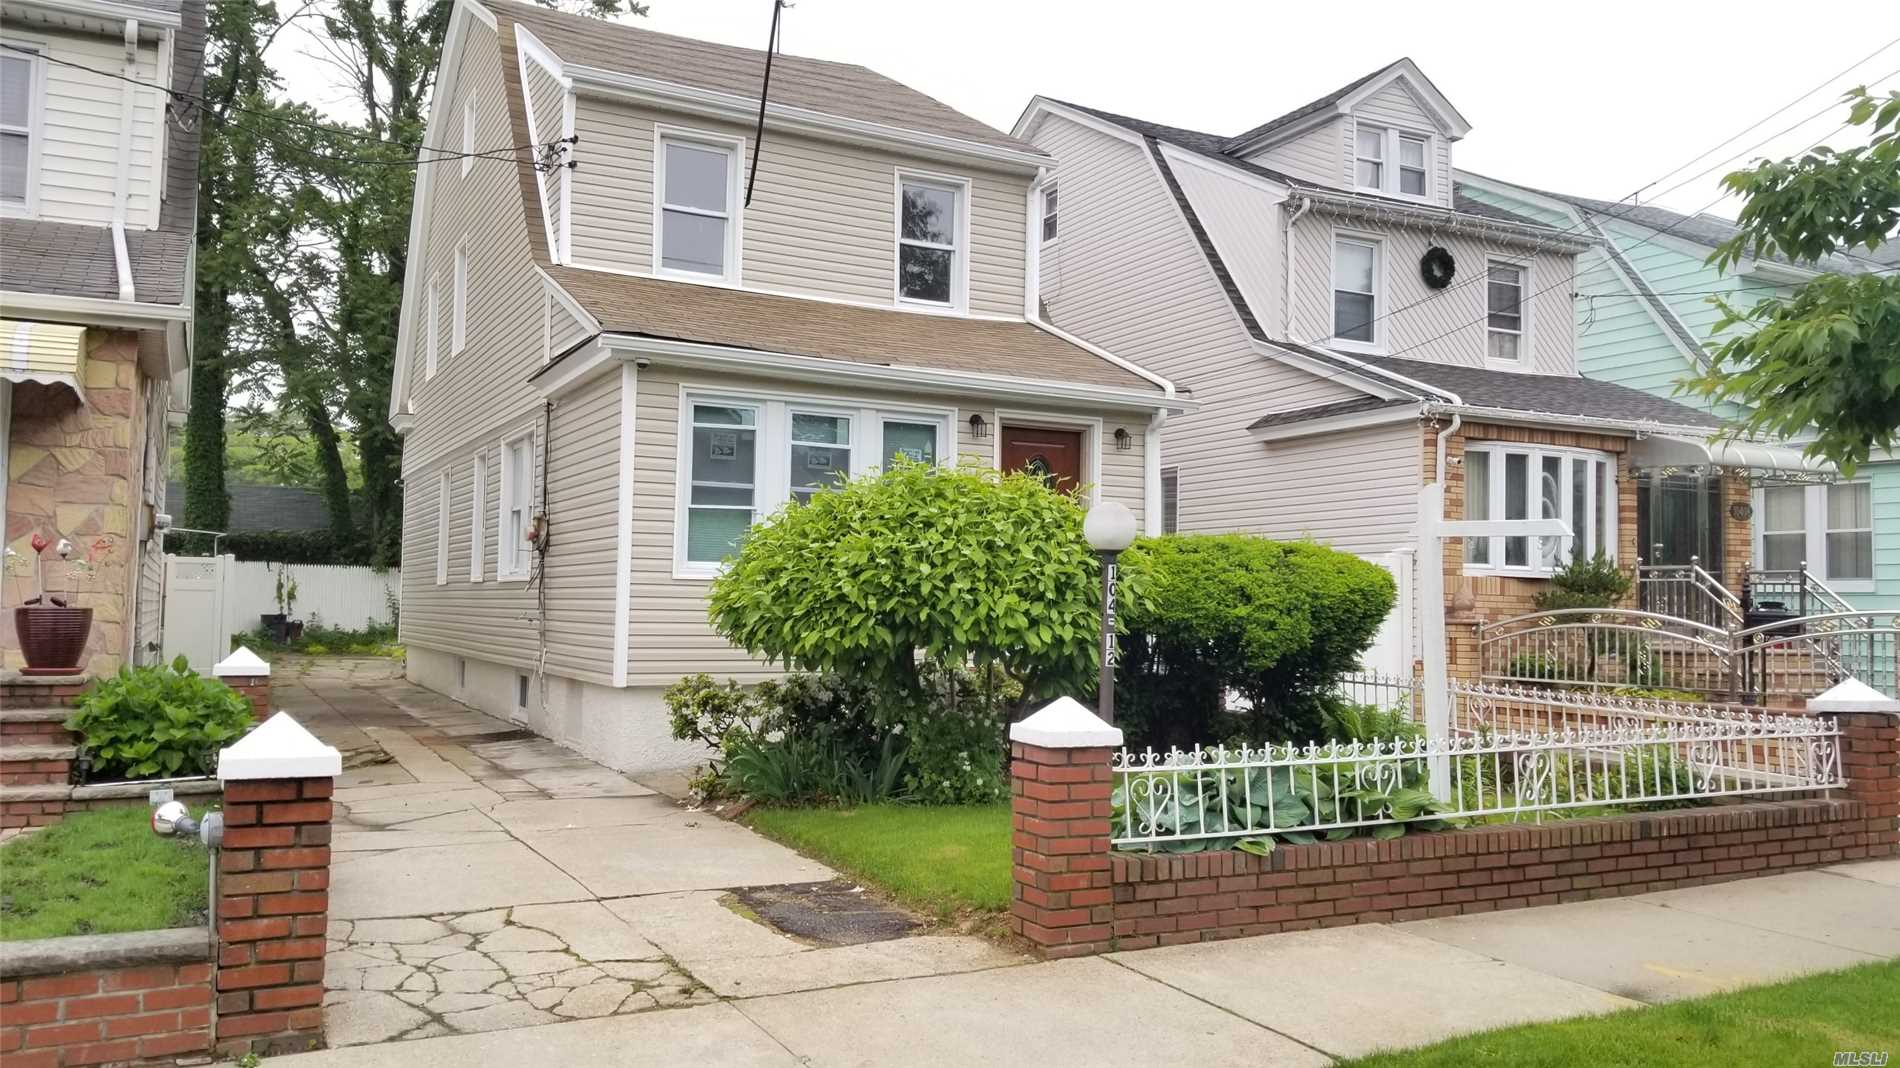 BEAUTIFUL 1 FAMILY HOUSE LOCATED ON A VERY QUEIT AREA, FULLY RENOVATED HOUSE WITH ALL NEW KITCHEN AND BATHROOMS, NEW HARDWOOD FLOORING, NEW BOILER AND HOT WATER TANK, FINISHED BASEMENT WITH LAUNDRY ROOM, FBTH, KITCHEN, SEPERATE ENTRANCE, PRIVATE DRIVEWAY, NEW SIDING AND MORE.